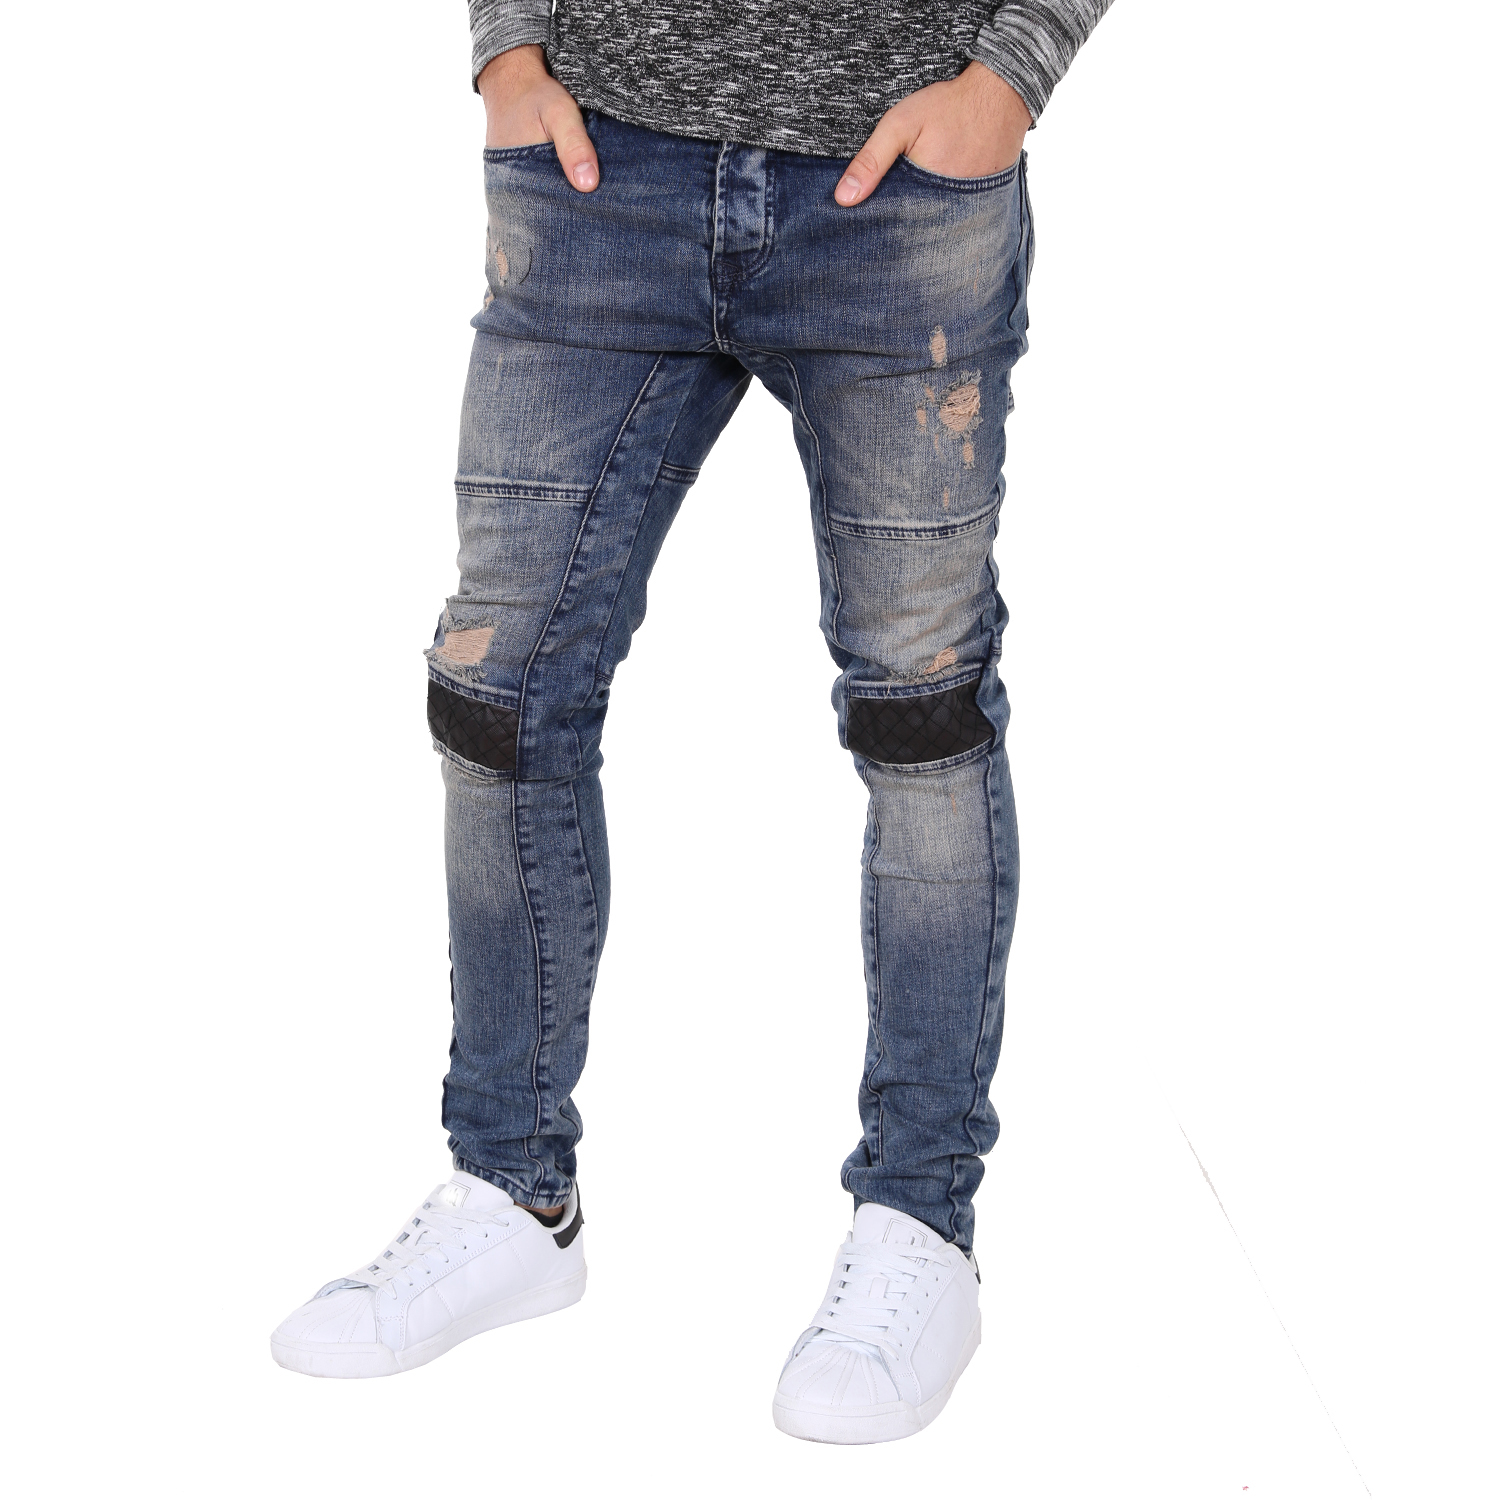 Fashion street style striped men's denim trousers cool ripped jeans with leather knee